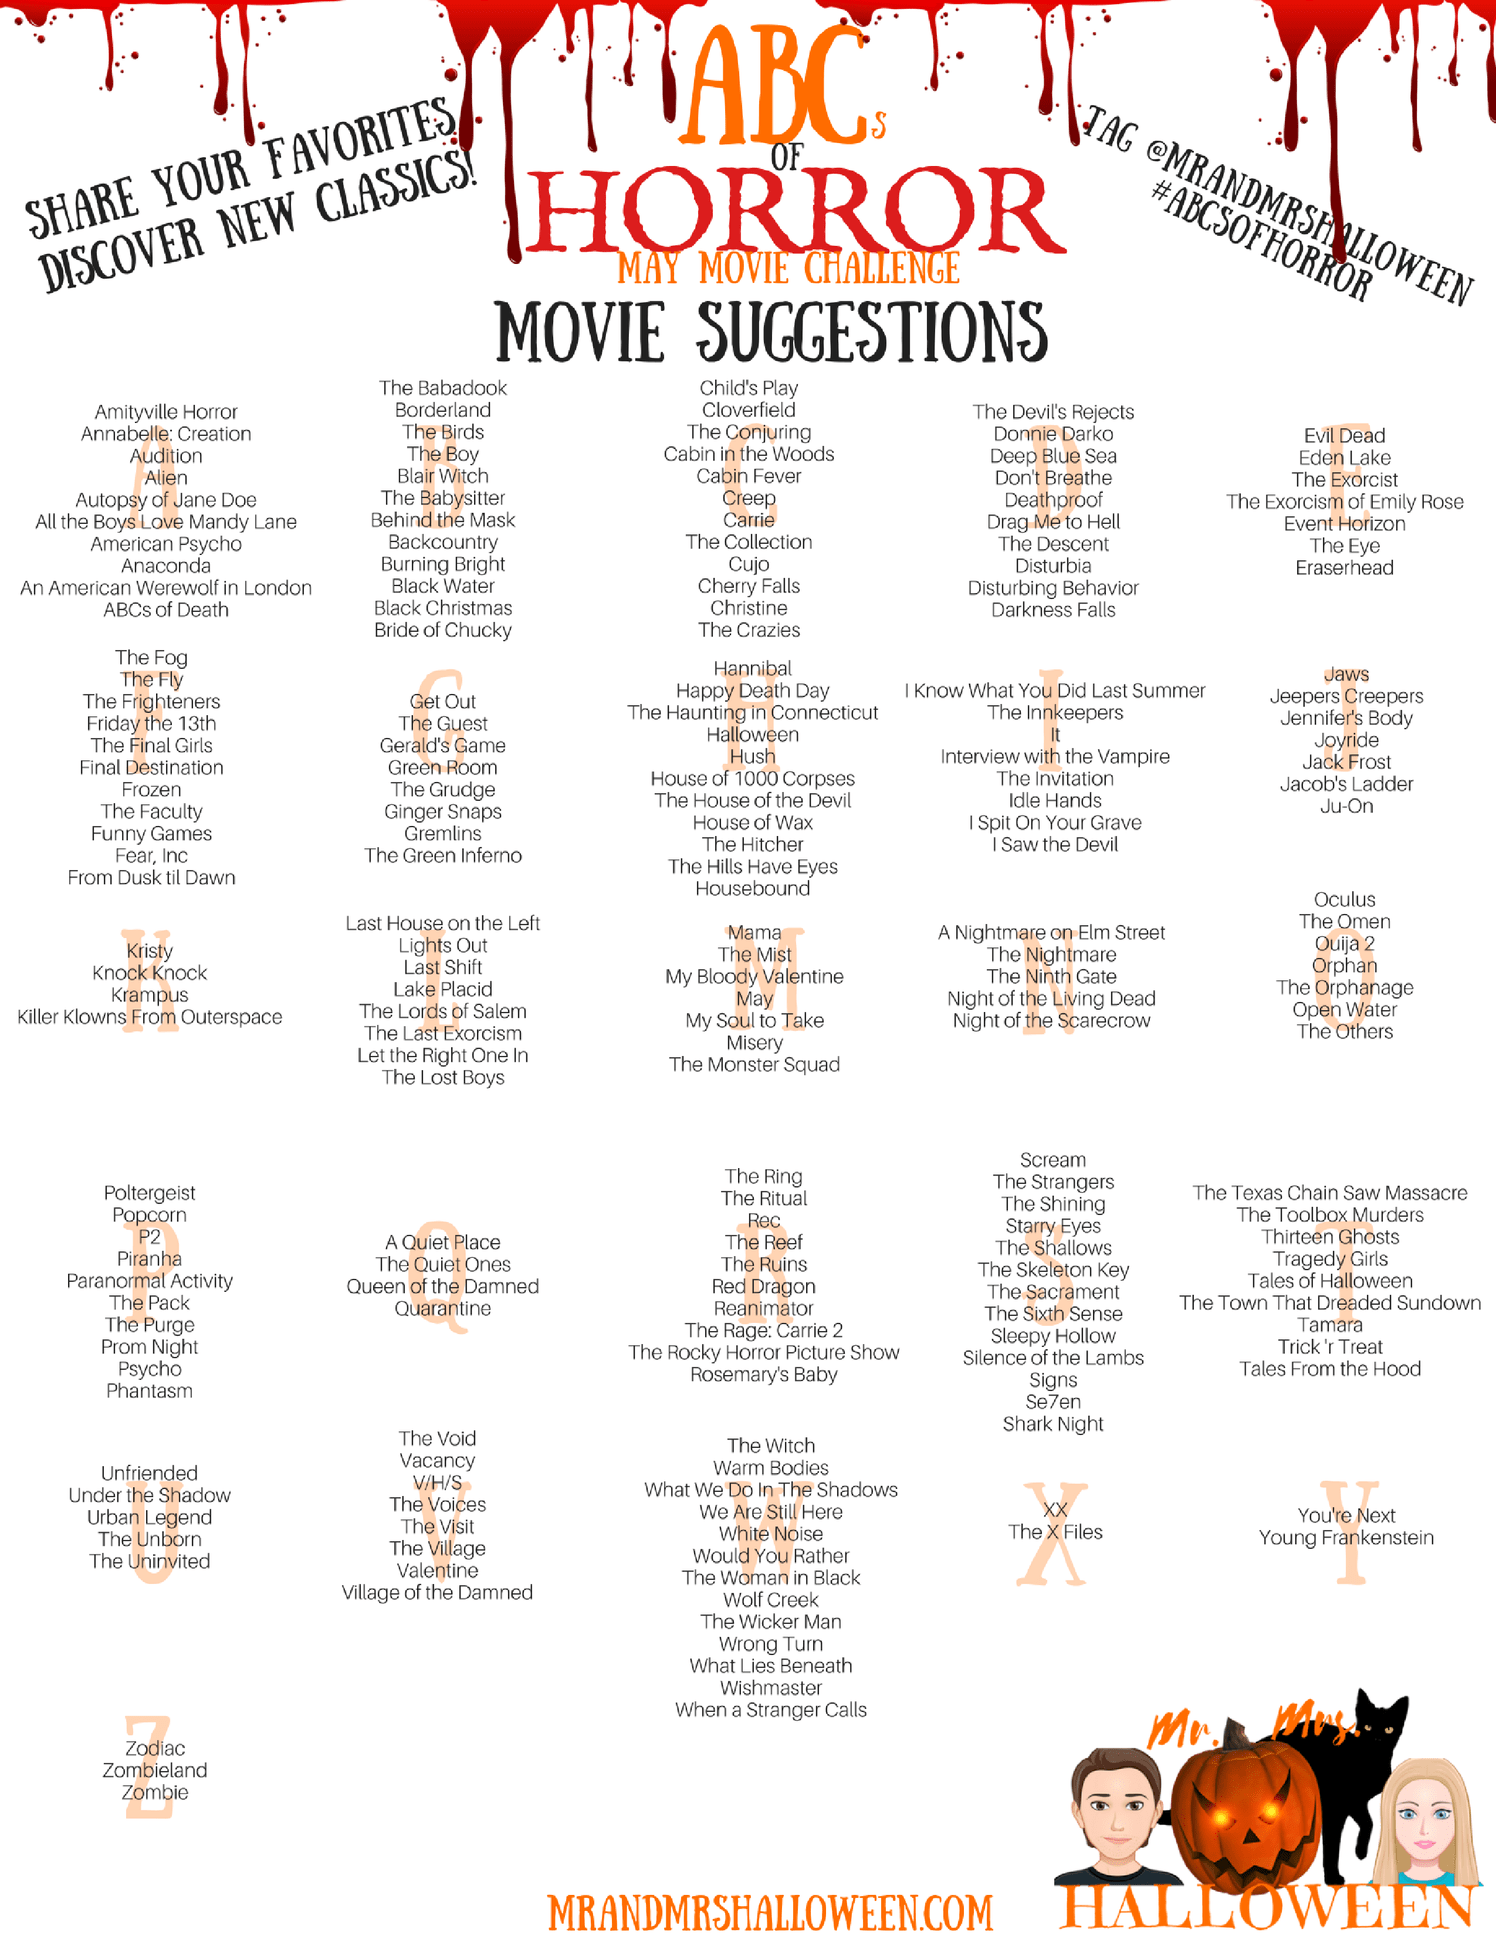 Halloween Mr And Mrs Halloween Horror Movie Challenge Halloween Horror Movies Best Halloween Movies Scary Movie List Horror movie club house of 1000 corpses. halloween movies scary movie list